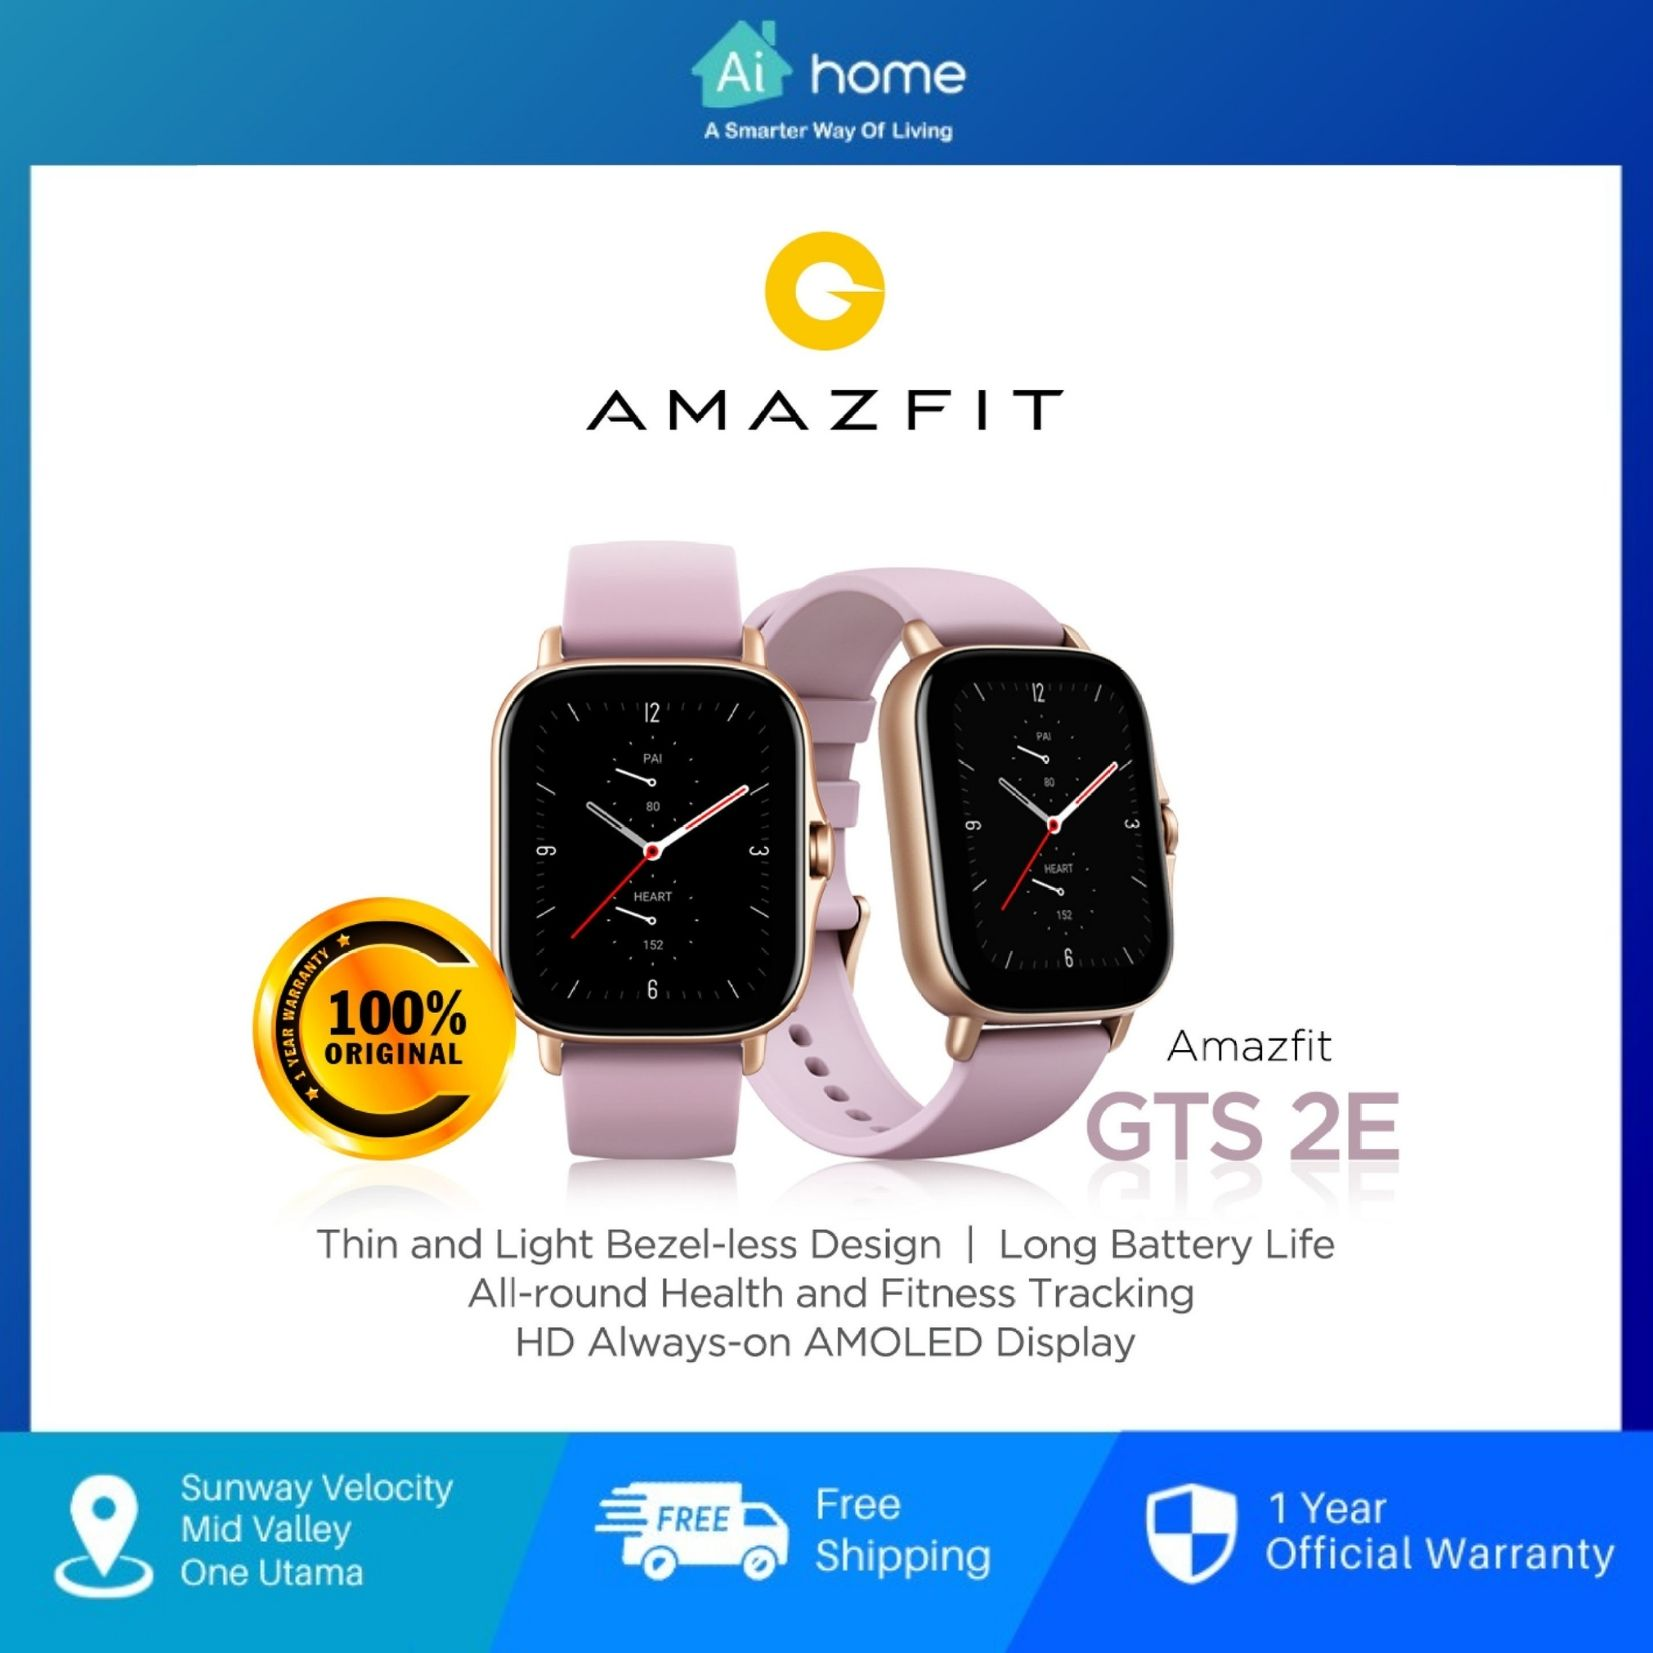 Amazfit GTS 2e Fitness Smart Watch - Global Version | AMOLED Display | 50+ Watch Face | Blood-Oxygen [ Aihome ]